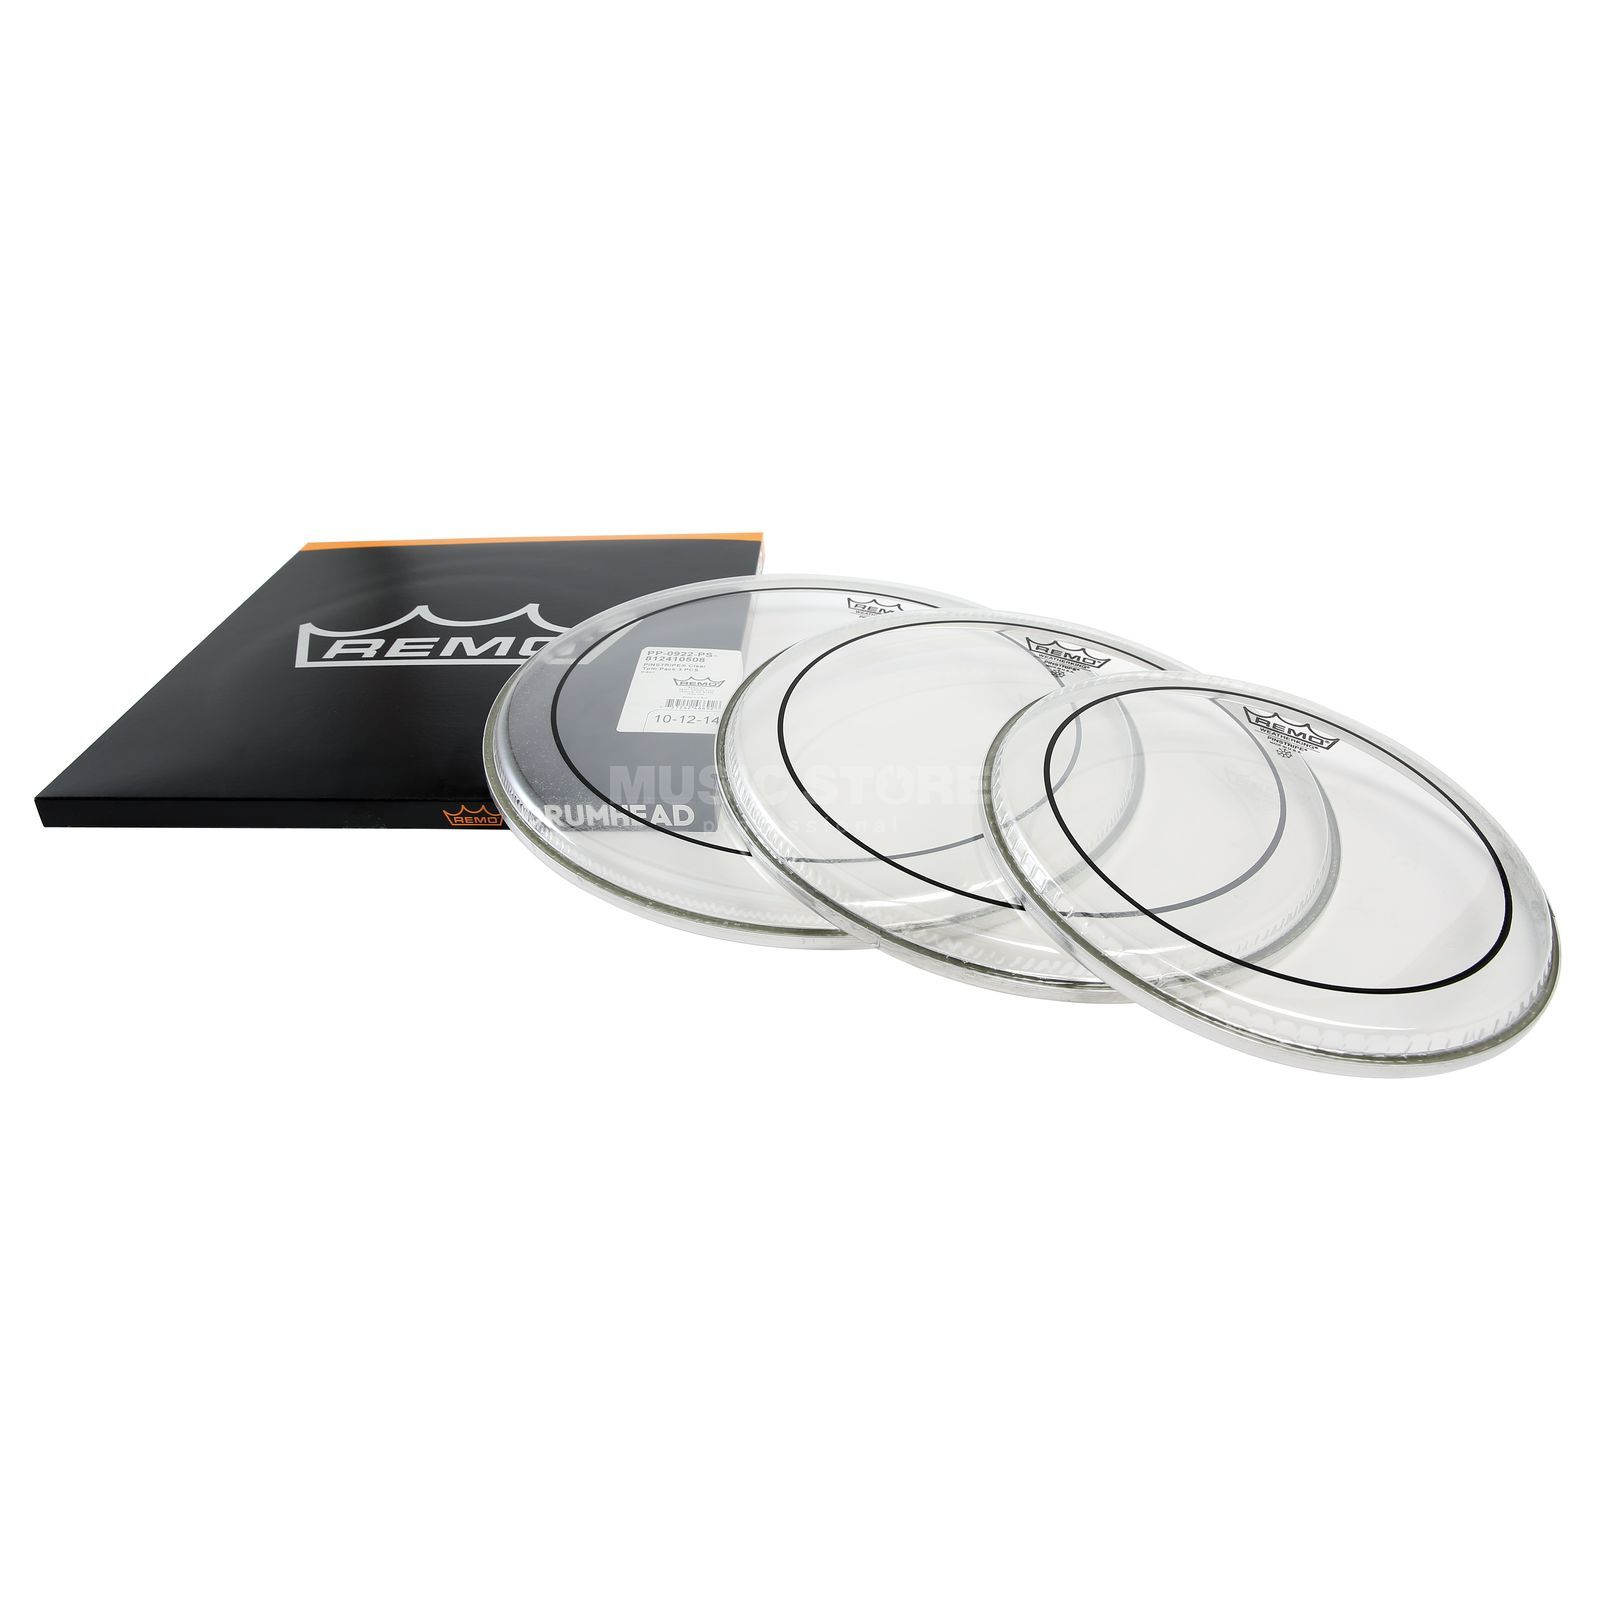 "Remo Drum Head Set Pinstripe, Clear, Standard: 12"",13"",16"" Изображение товара"